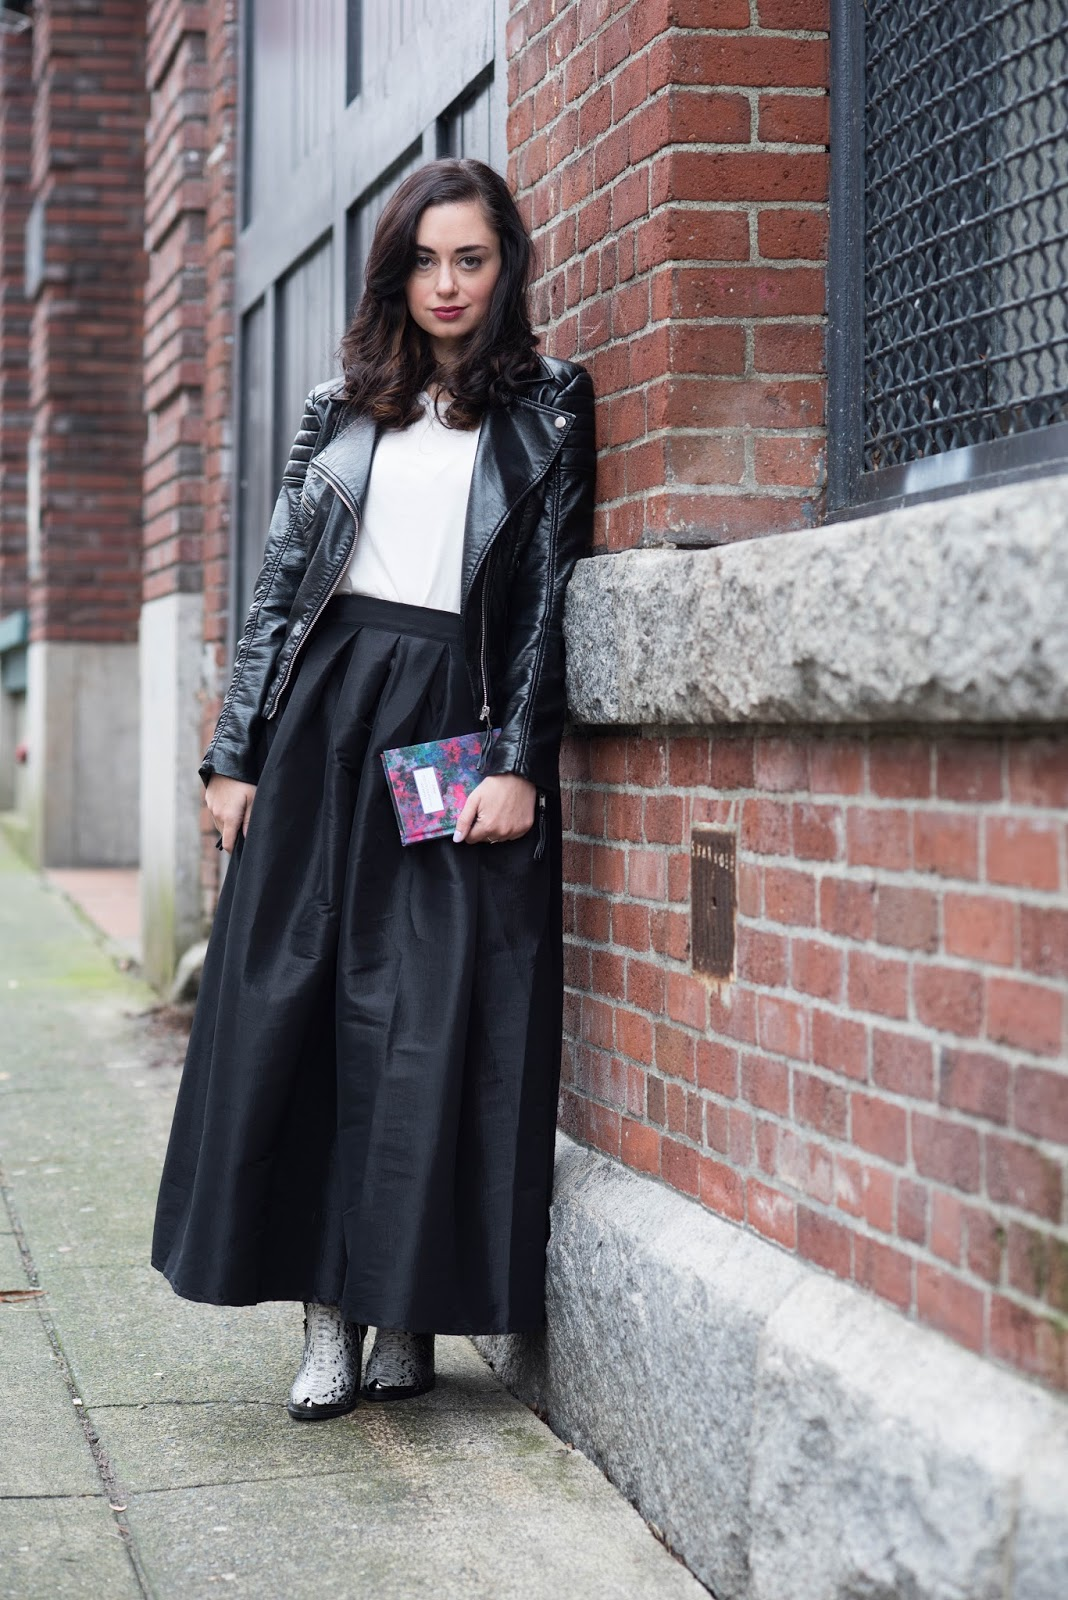 coco and vera top vancouver fashion blog h&m vegan leather jacket popbasic tee chic wish maxi skirt jeffrey campbell snakeskin boots